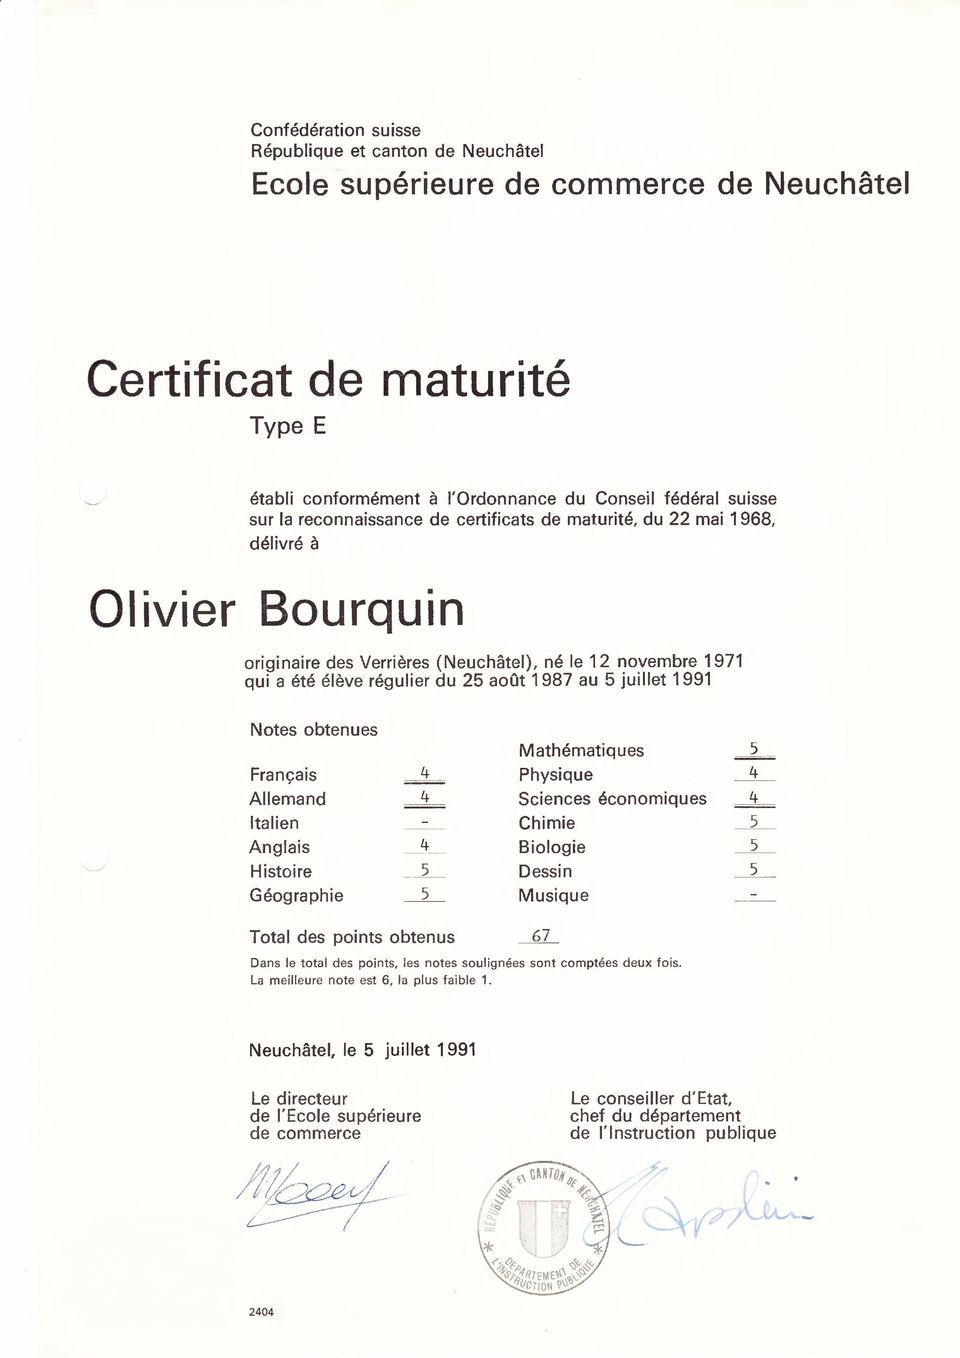 ete eleve regulier du 25 aout 1987 au 5 juillet 1991 Notes obtenues Mathematiques 2 Fran<;ais --~ ---- Physique 4 Allemand ~-- Sciences economiques 3~ Ita lien Chimie _ 5 _ Anglais 4 Biologie _ 5